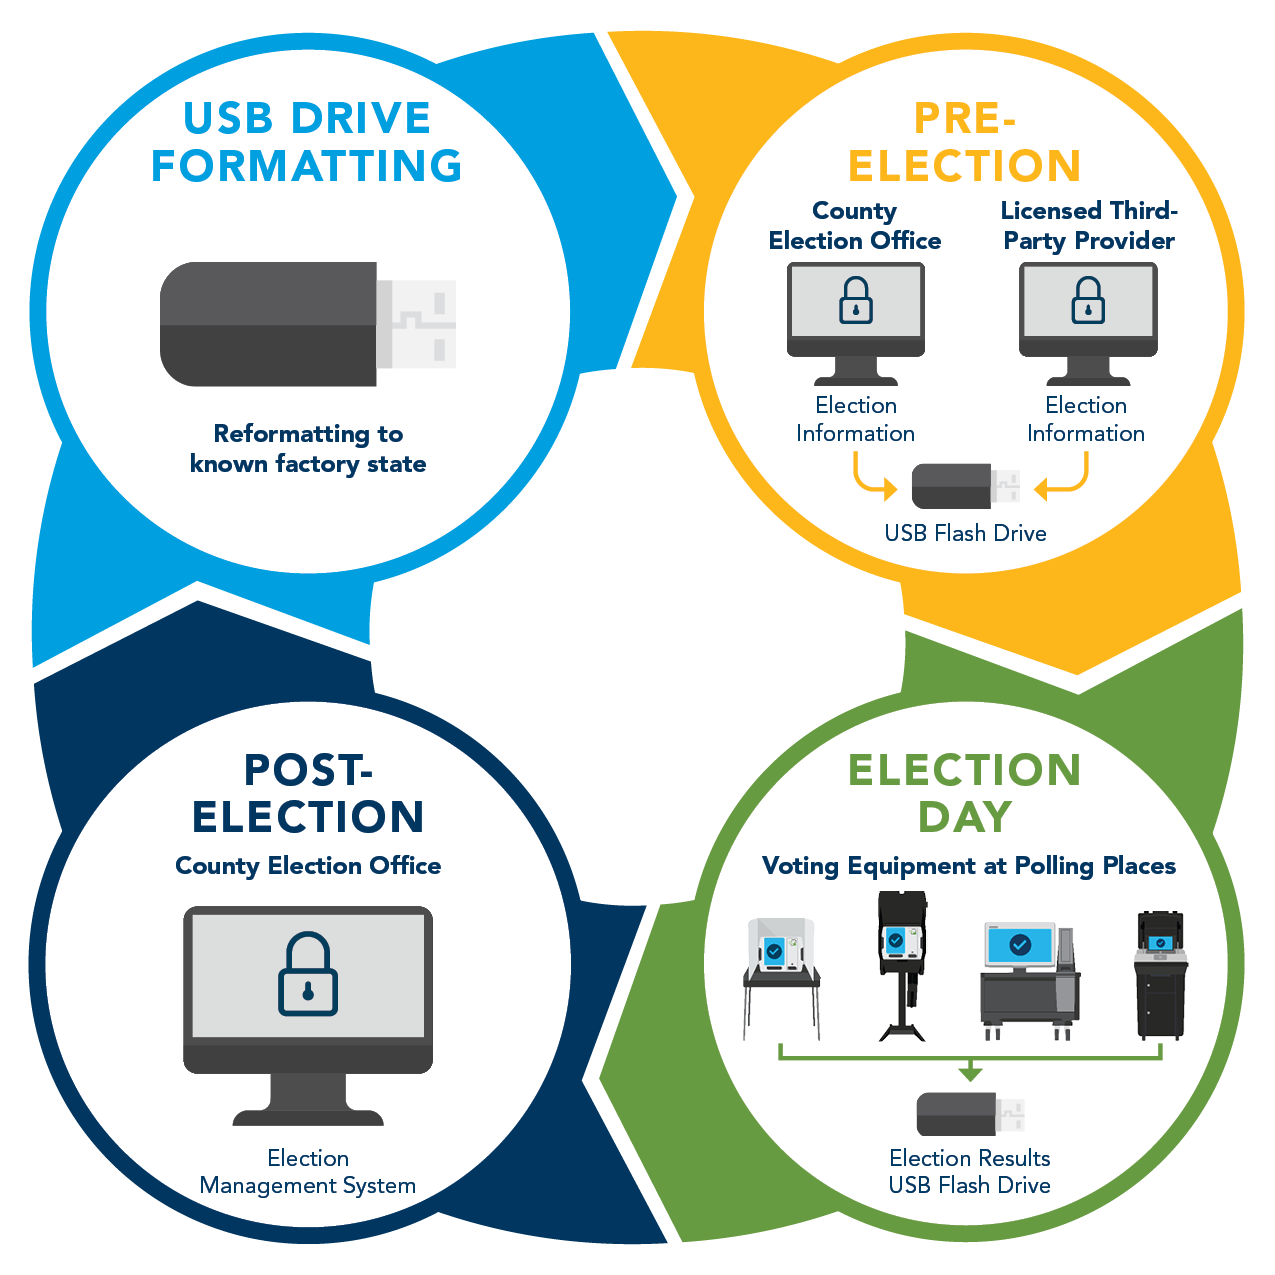 Infographic showing the cycle of a USB drive, from Formatting to Election Prep, to Election Day, to Election Night, and back to formatting